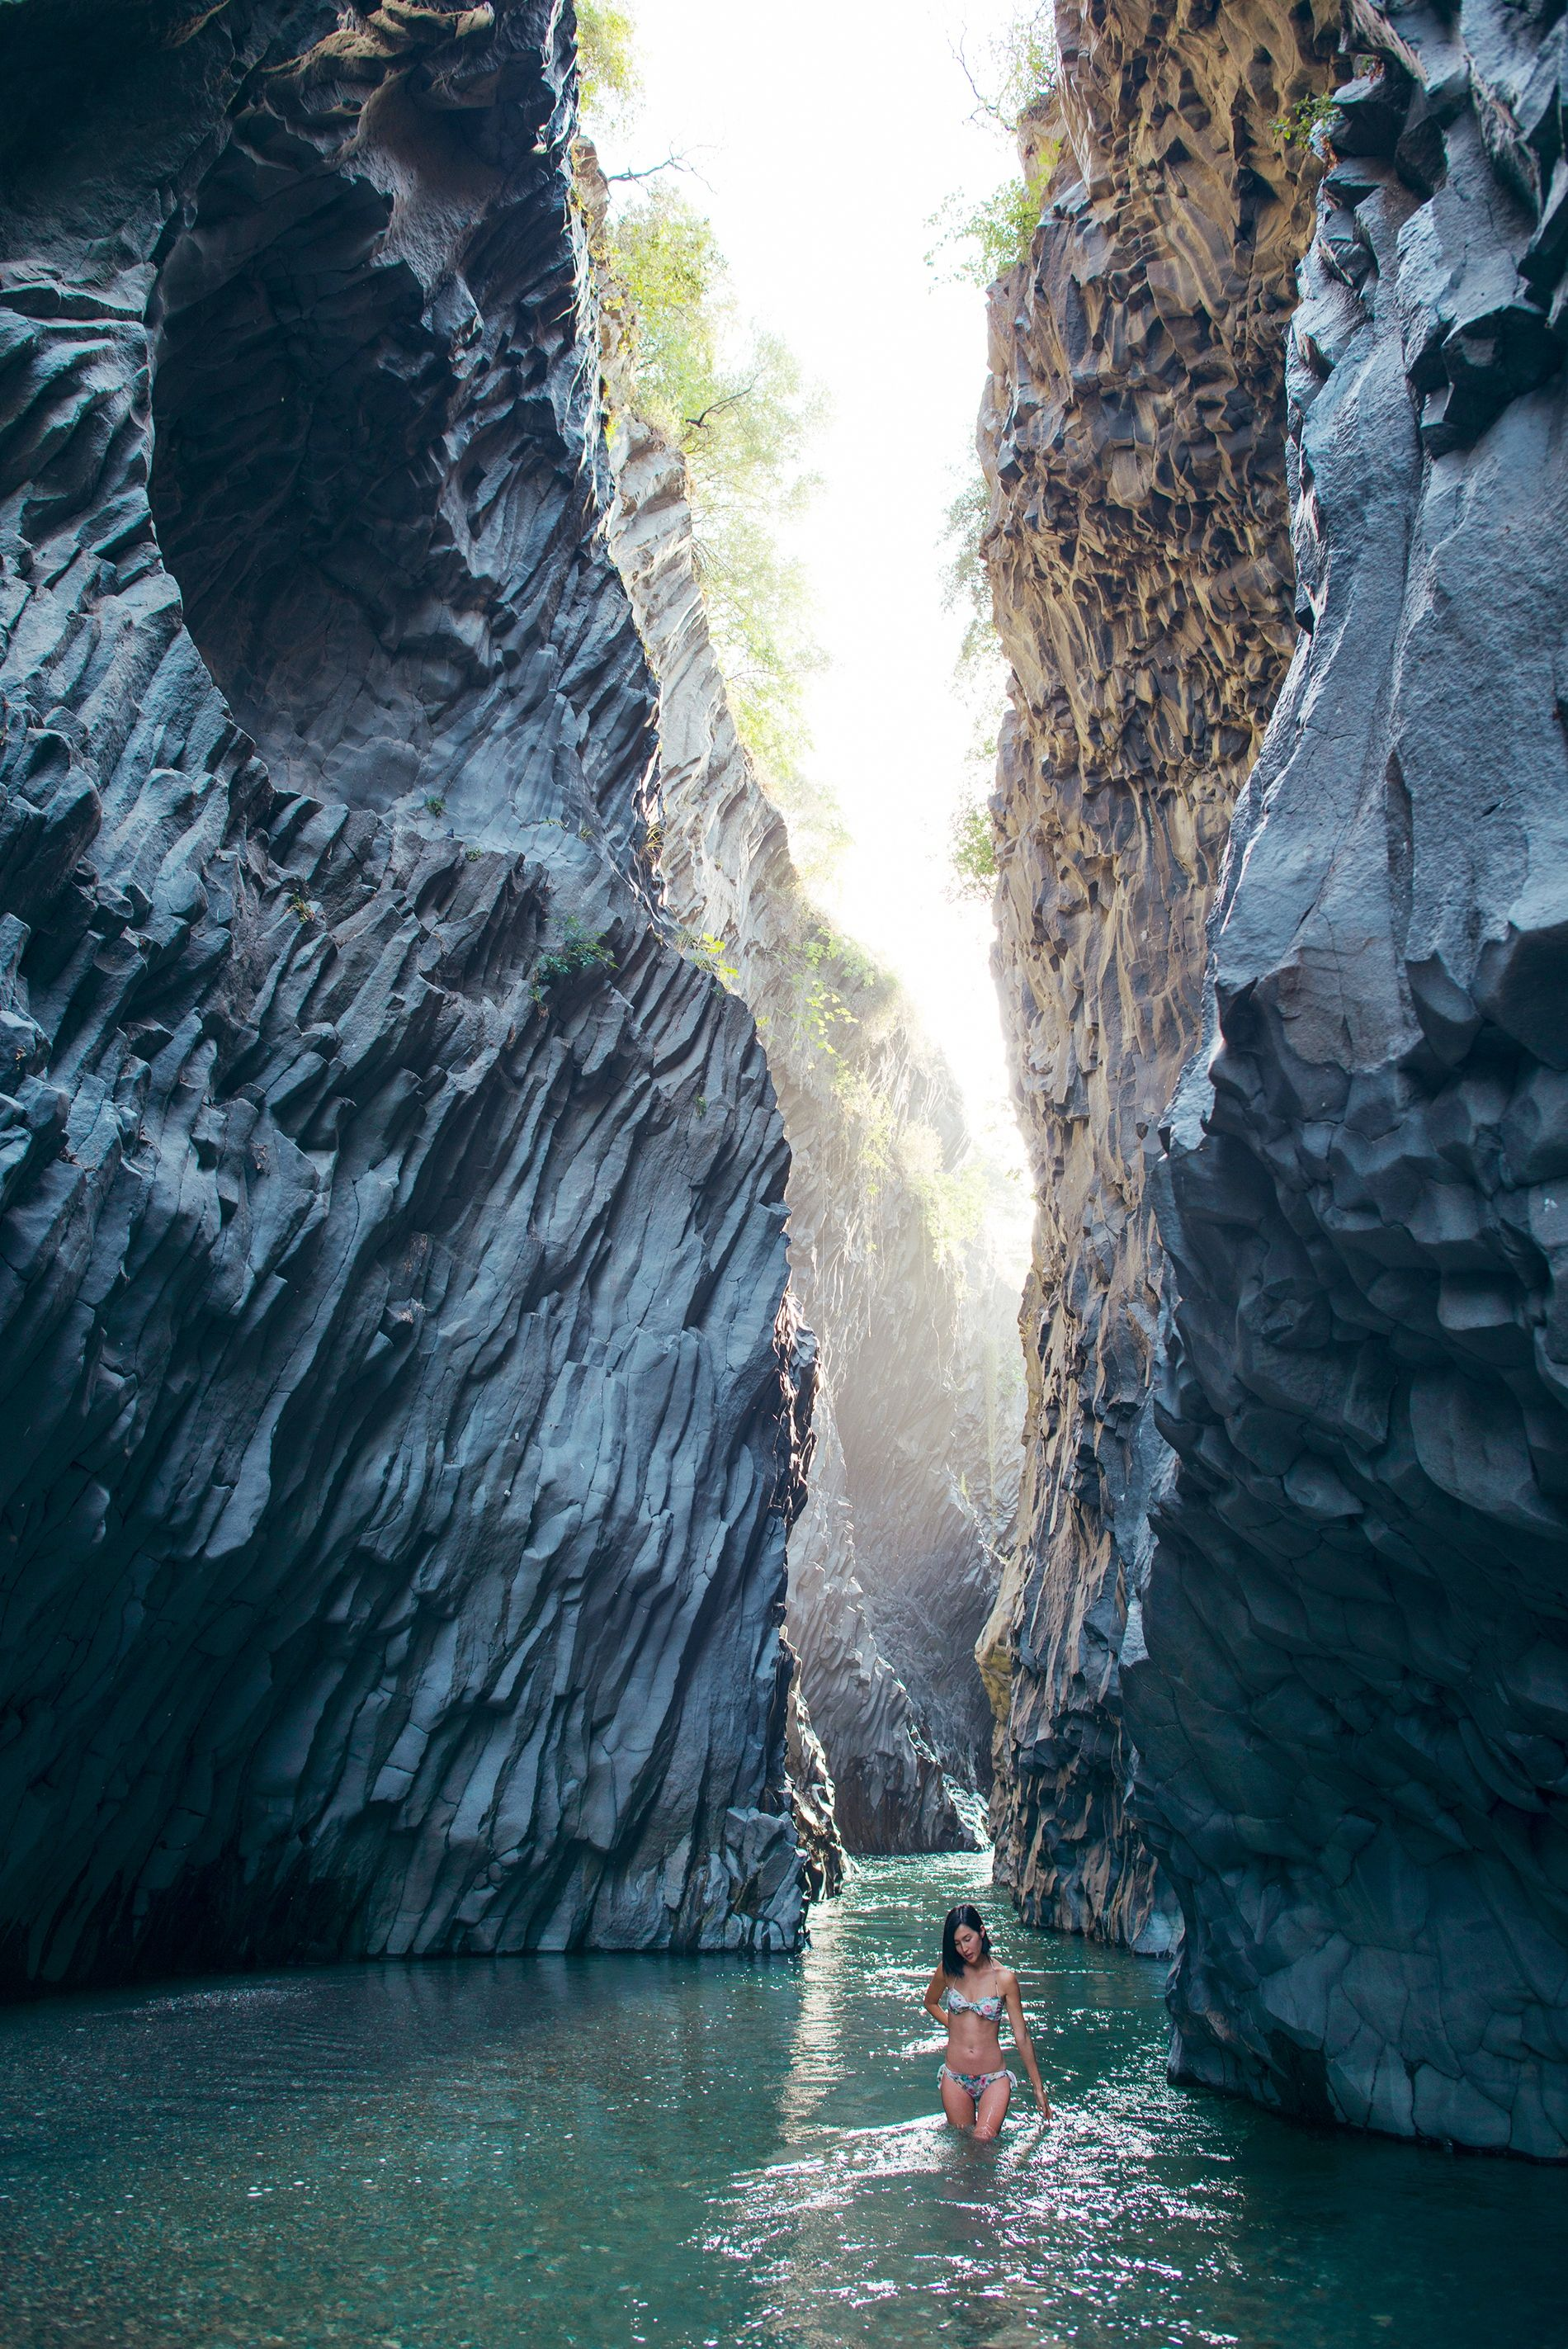 alcantara gorge sicily italy wanderlust sicily. Black Bedroom Furniture Sets. Home Design Ideas